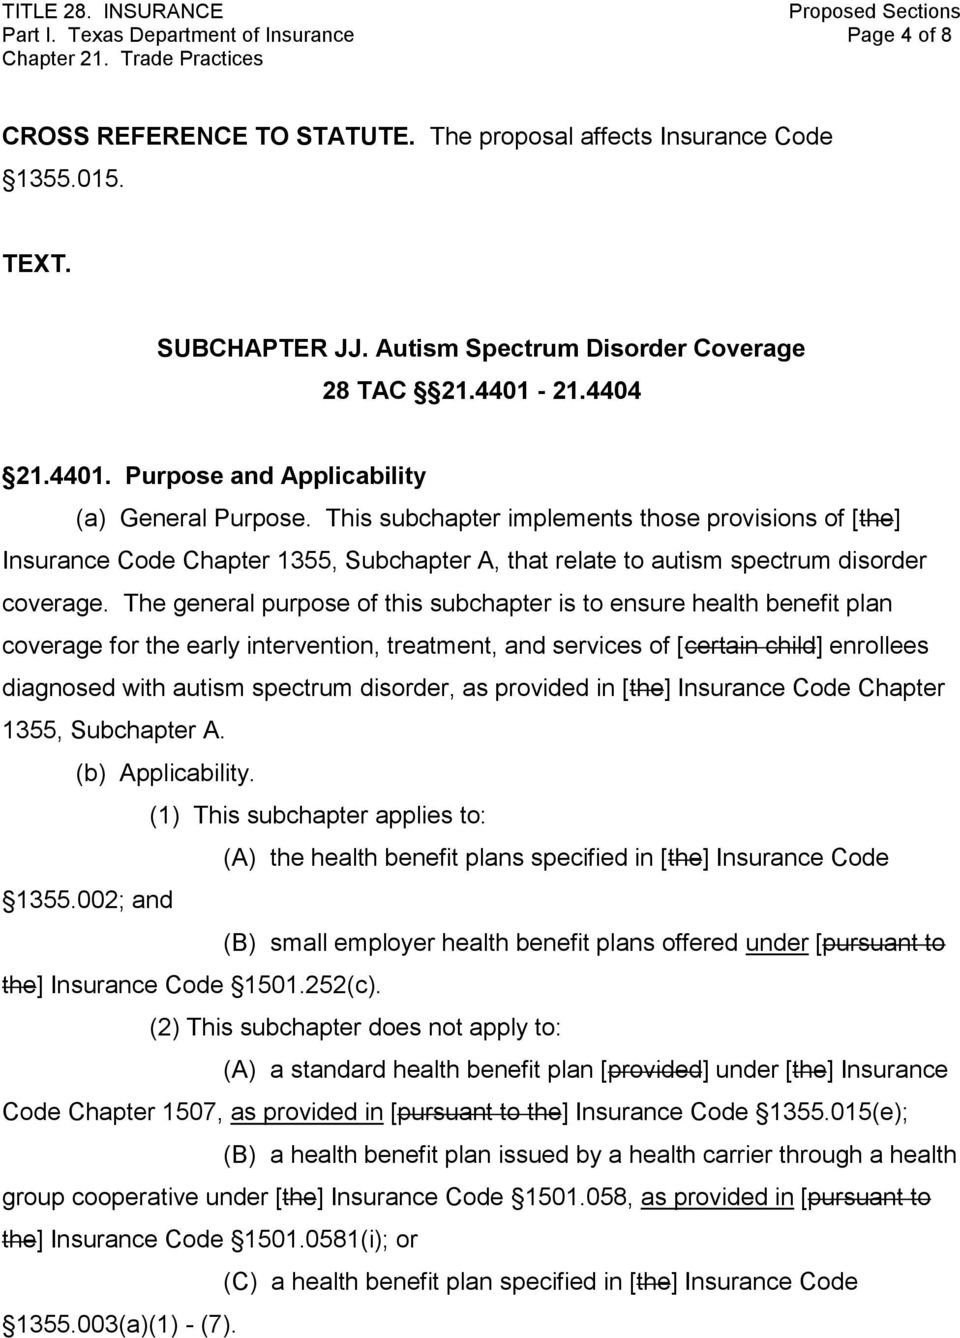 This subchapter implements those provisions of [the] Insurance Code Chapter 1355, Subchapter A, that relate to autism spectrum disorder coverage.